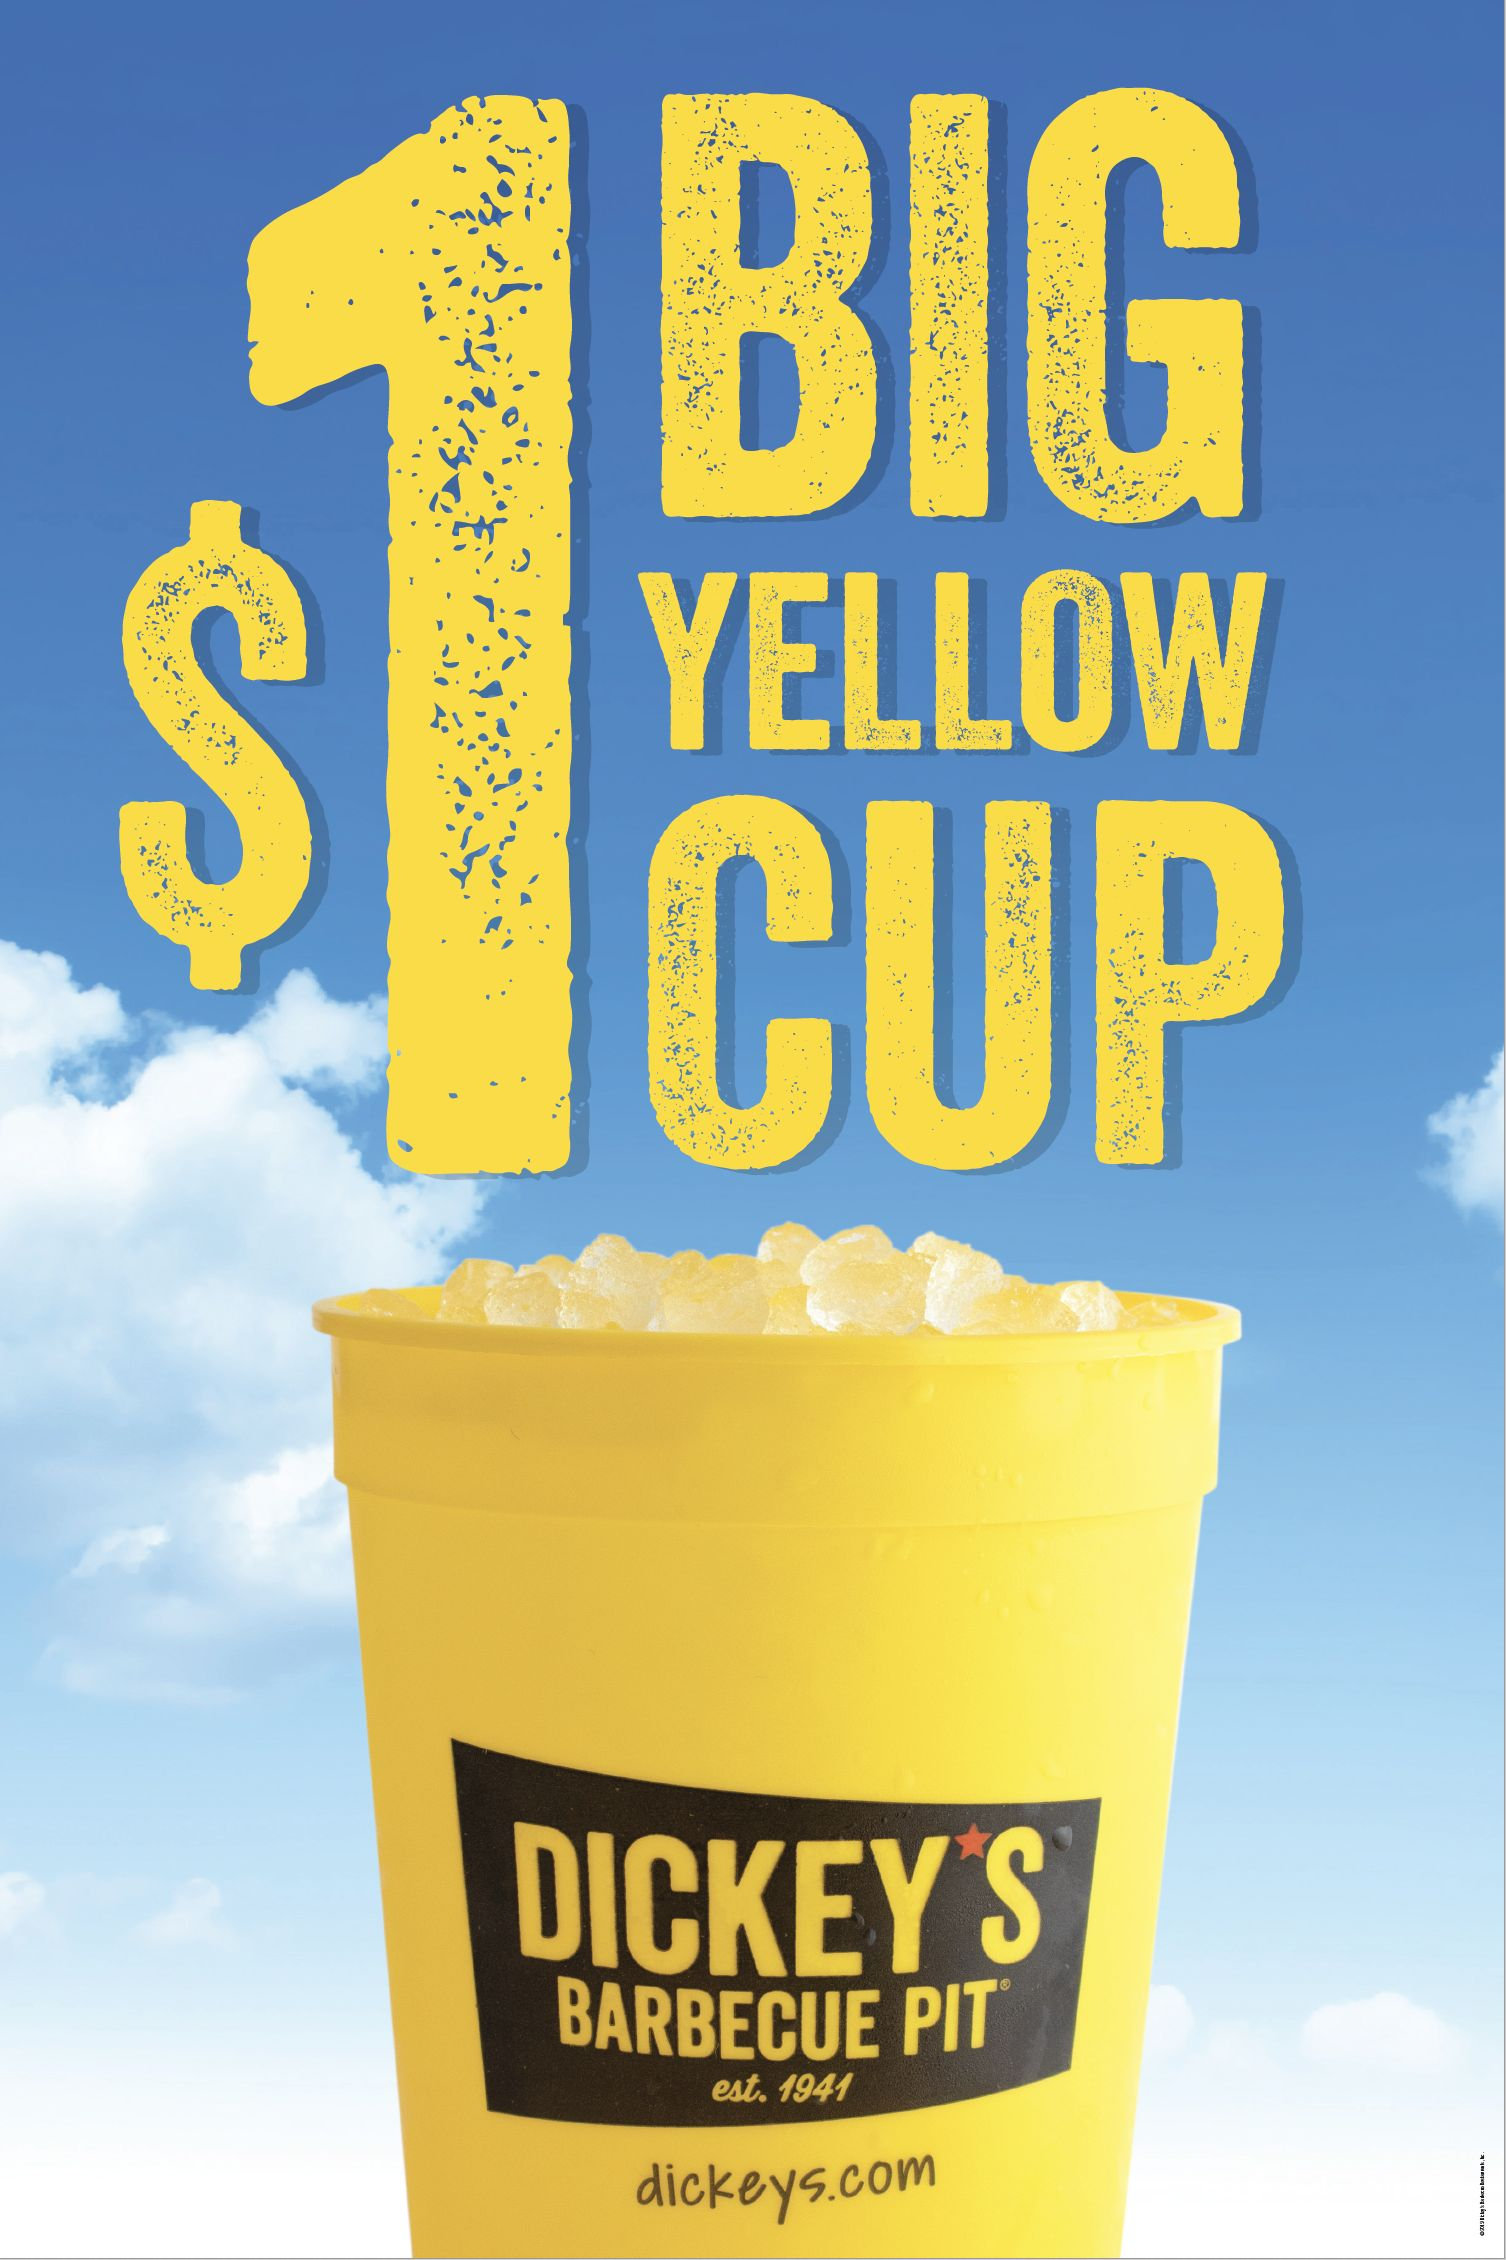 Dickey's Barbecue Pit offers $1 Big Yellow Cup for a limited time